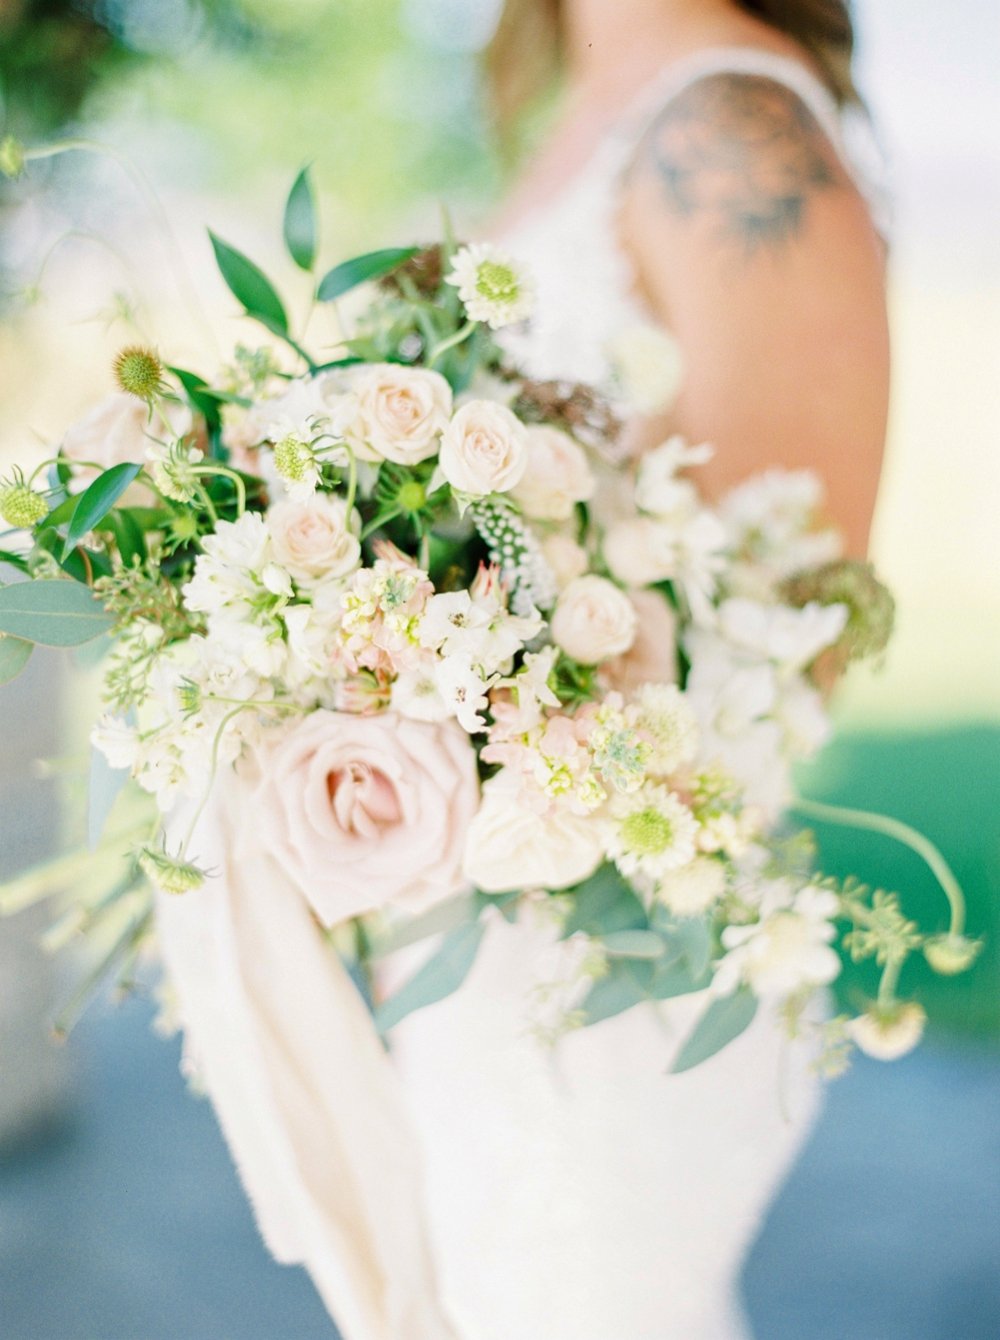 Sanctuary Gardens Kelowna Wedding | Elopement Photography | Bridal Portraits wedding bouquet details | Justine Milton Fine Art Film Wedding Photographers